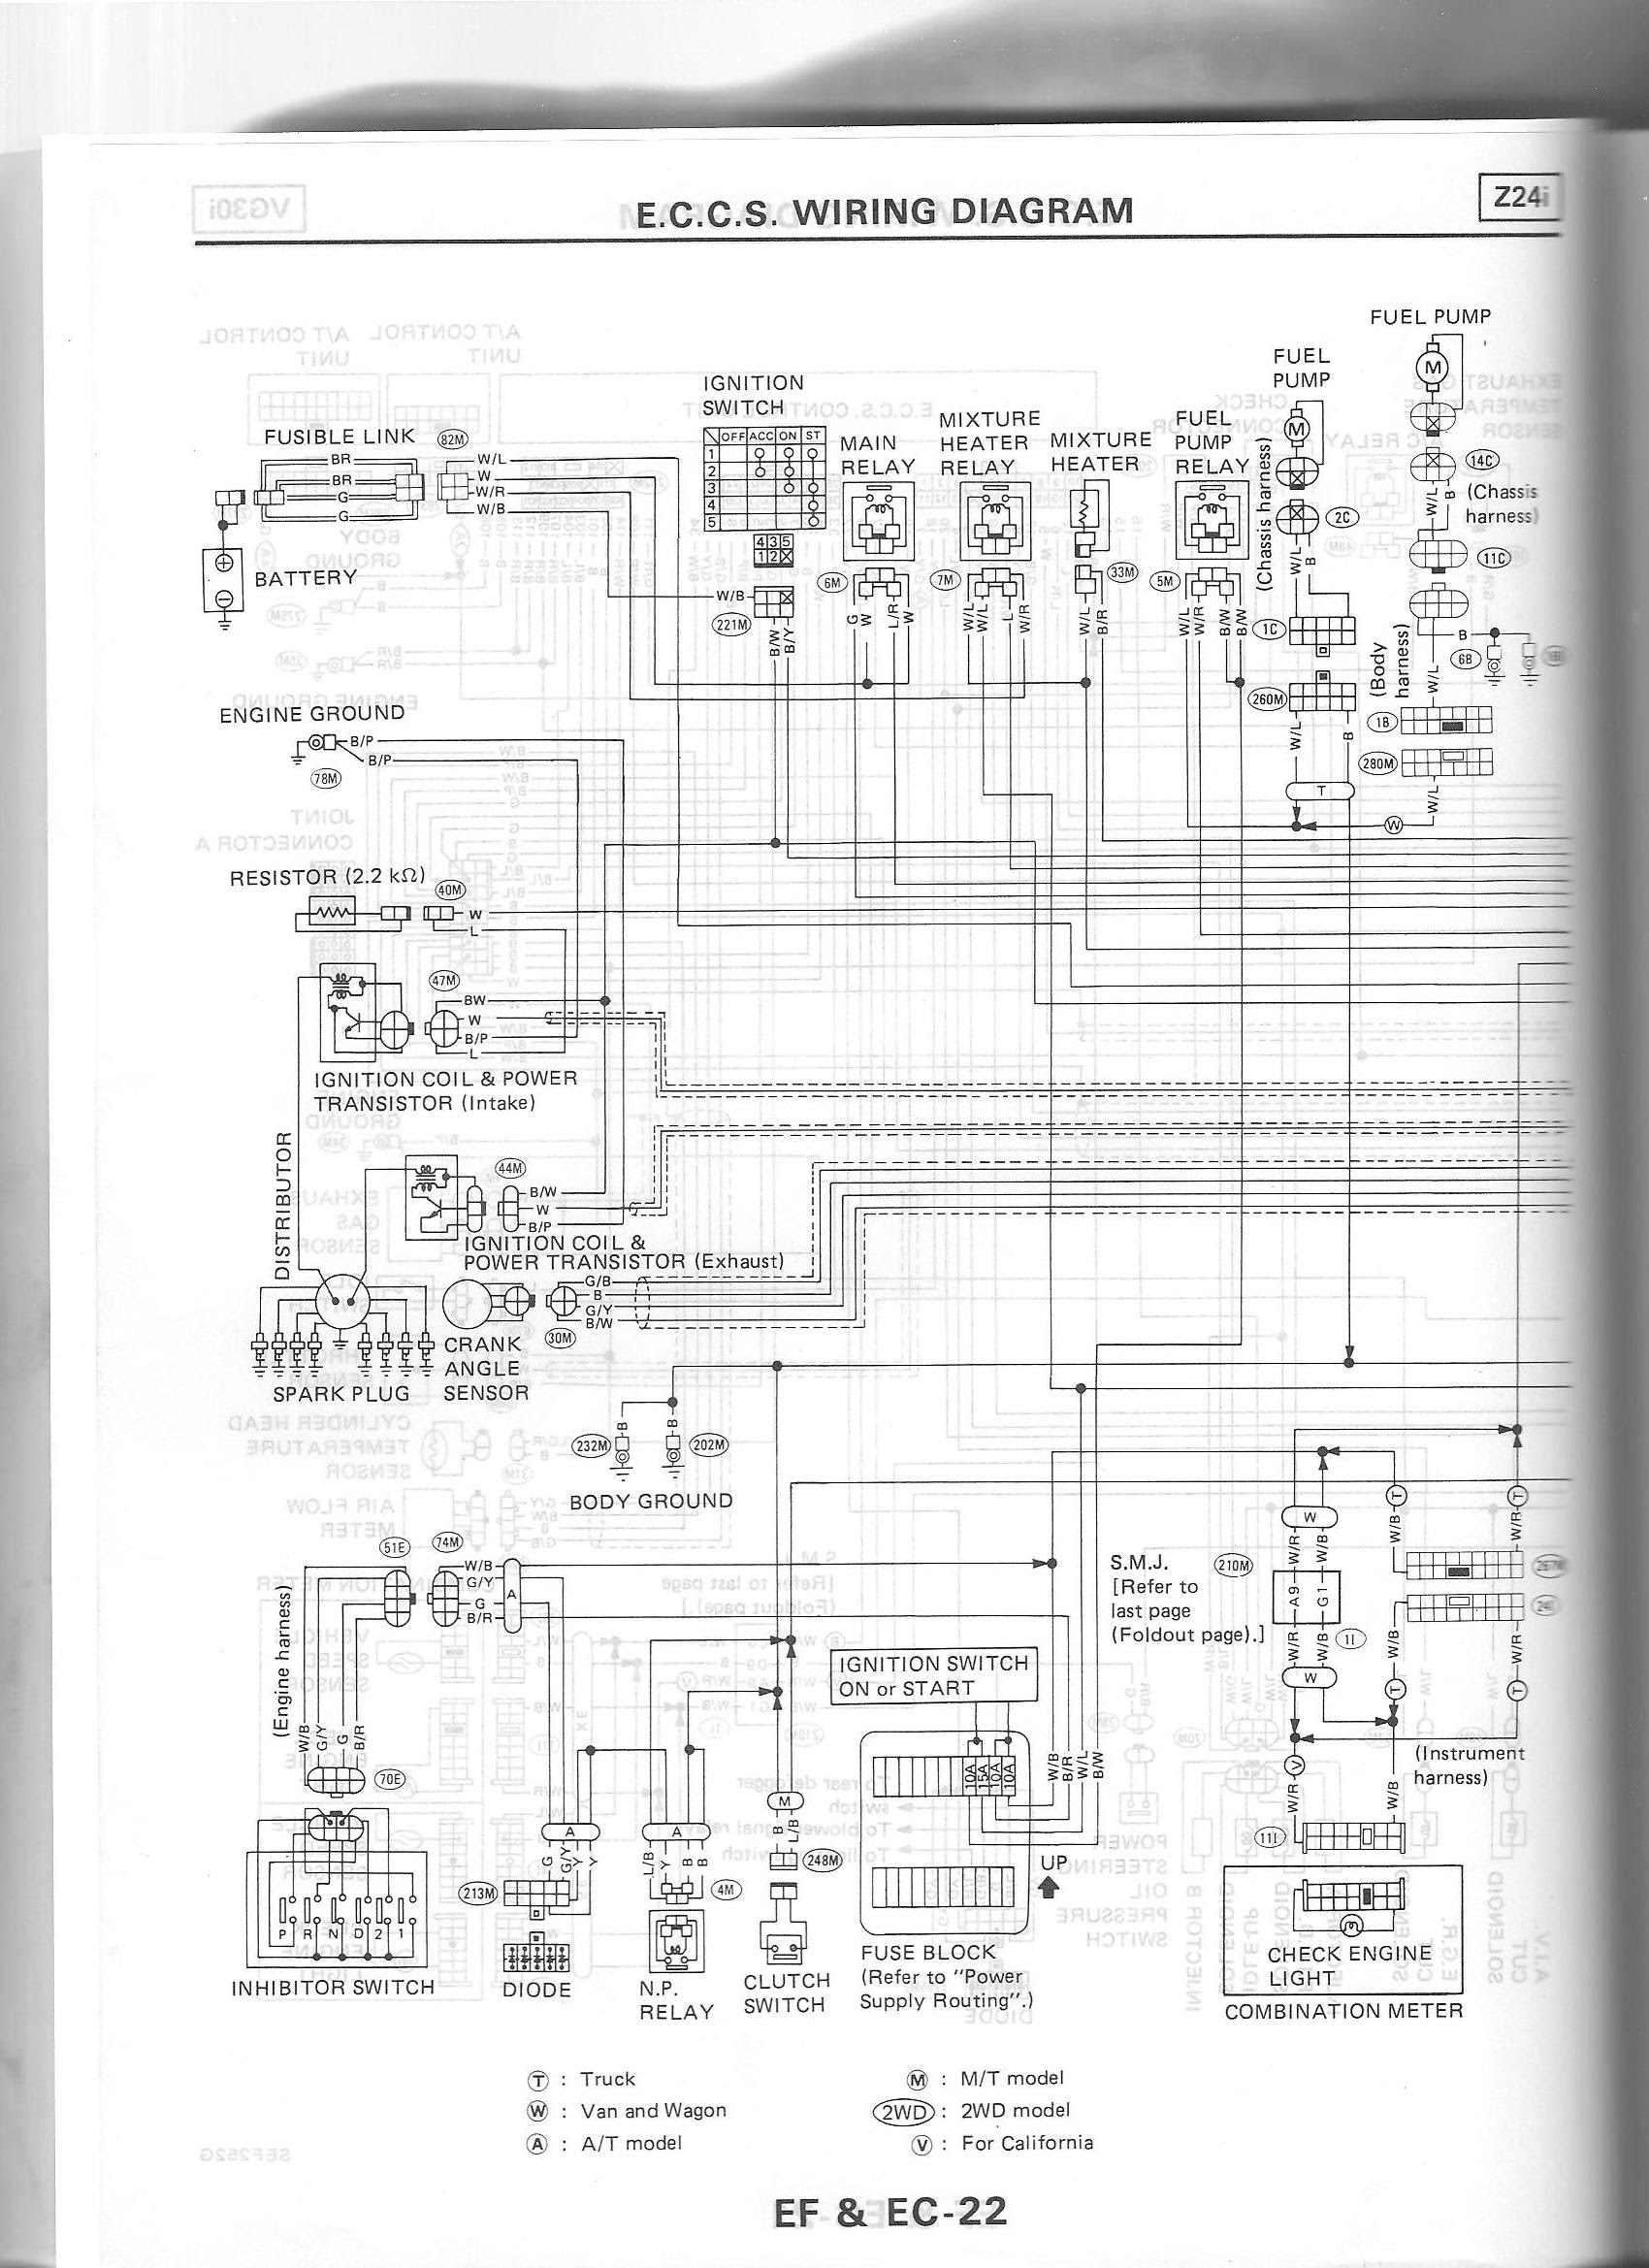 1986 Nissan D21 Stereo Wire Diagram Manual Guide